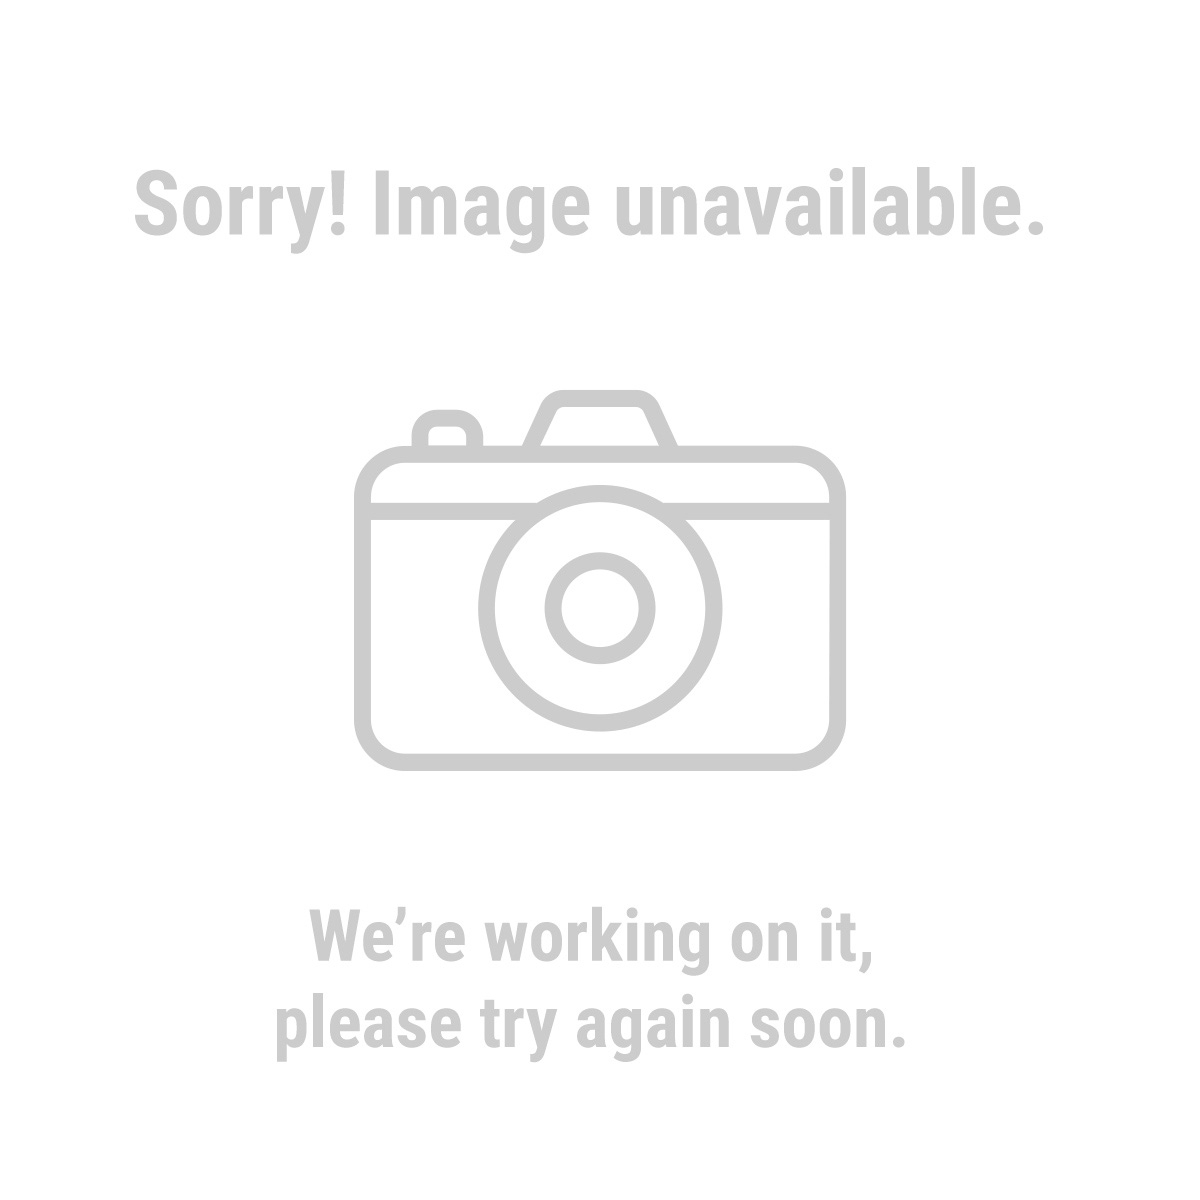 Central Pneumatic 61940 100 ft. x 3/8 in. Heavy Duty Premium Rubber Air Hose